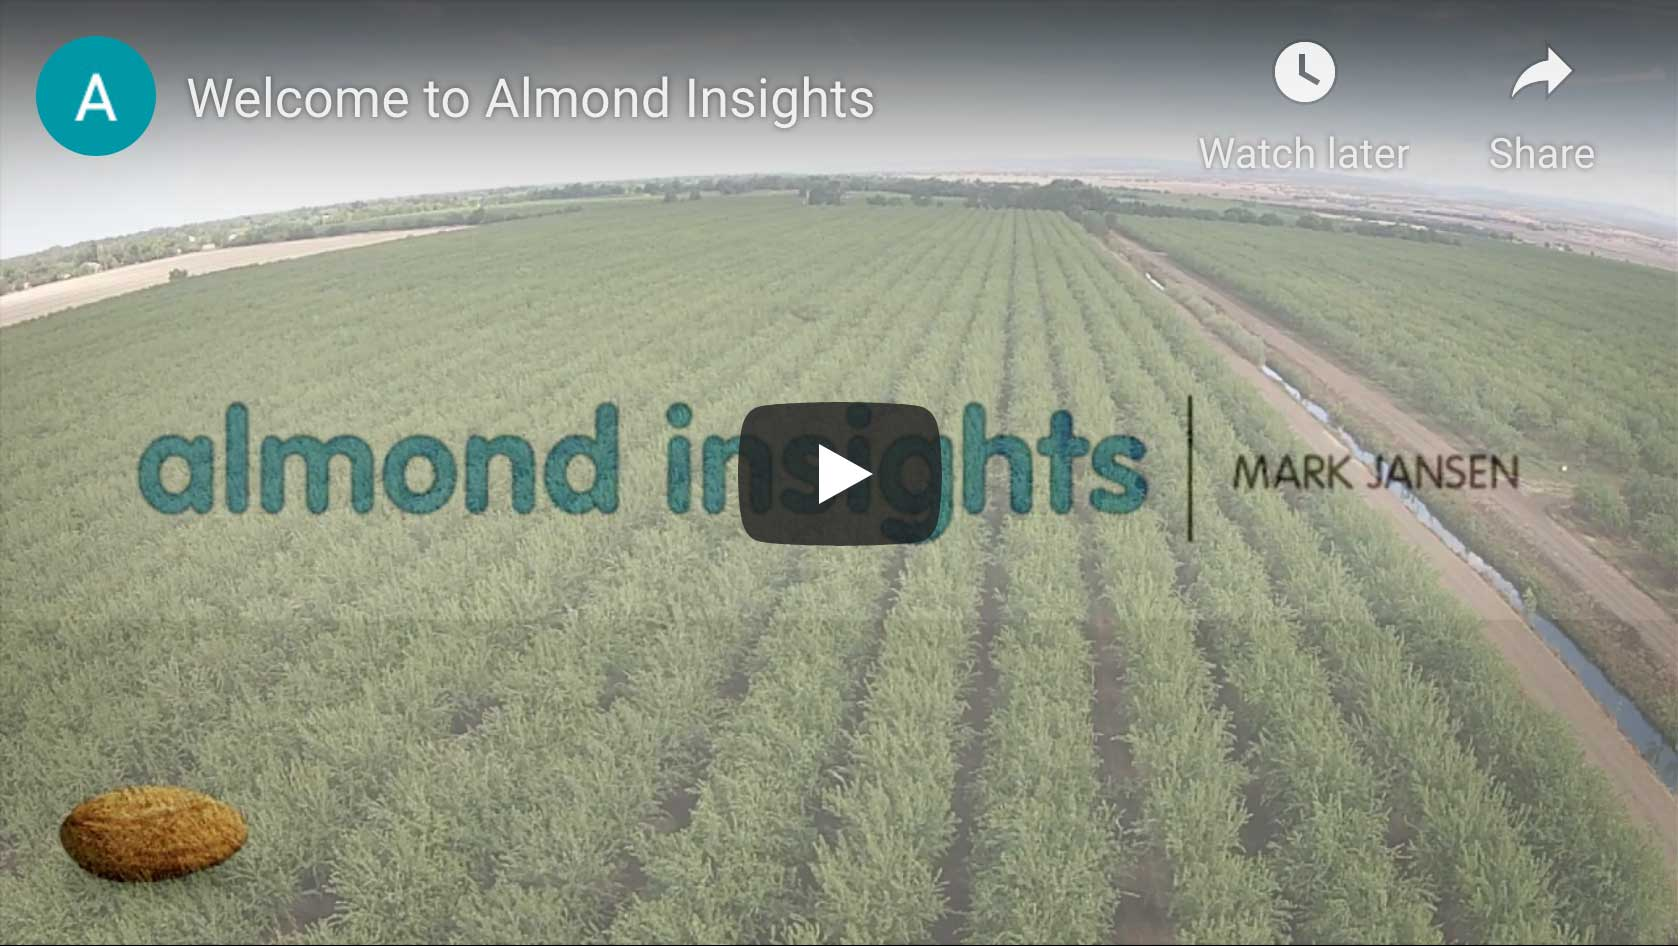 Mark Jansen Welcomes You To Almond Insights